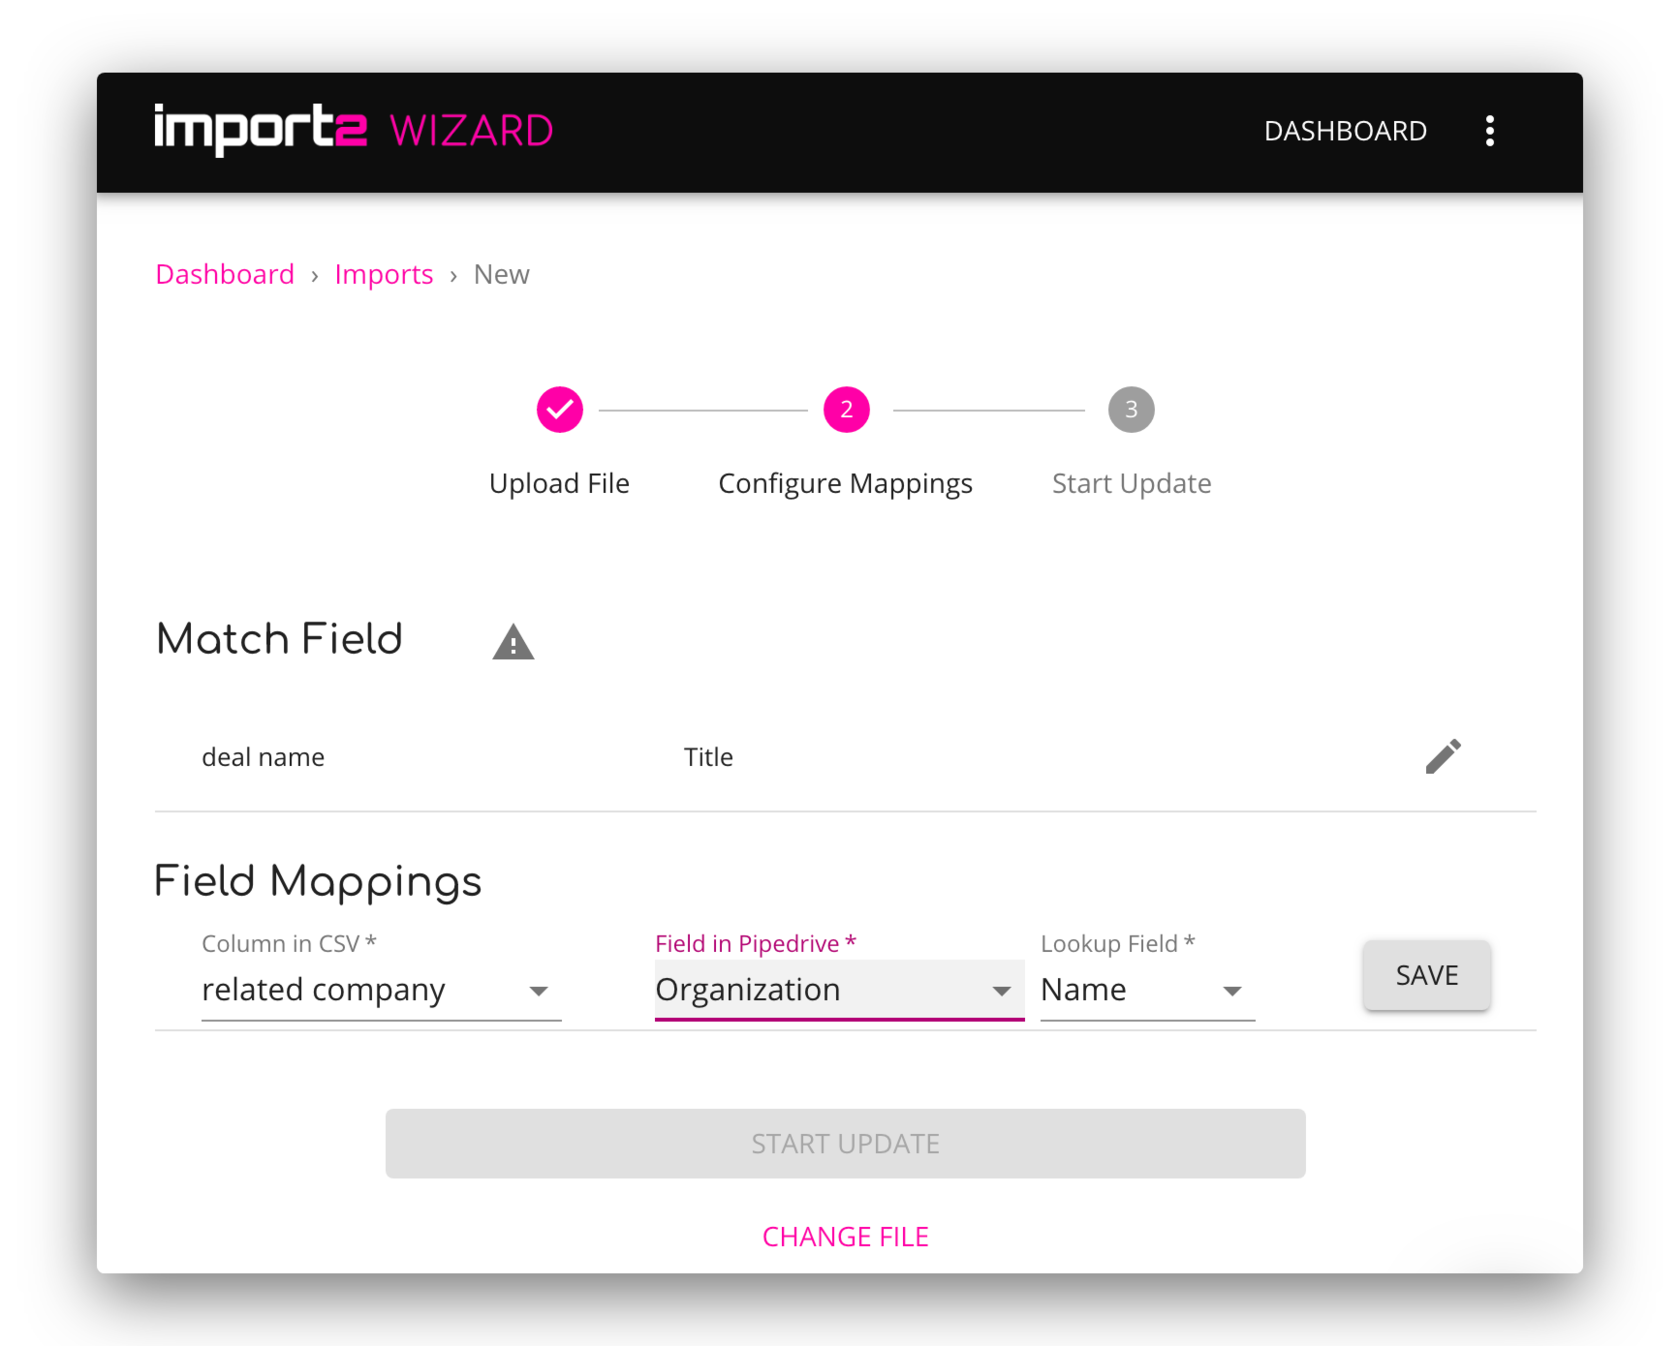 Import2Wizard dashboard